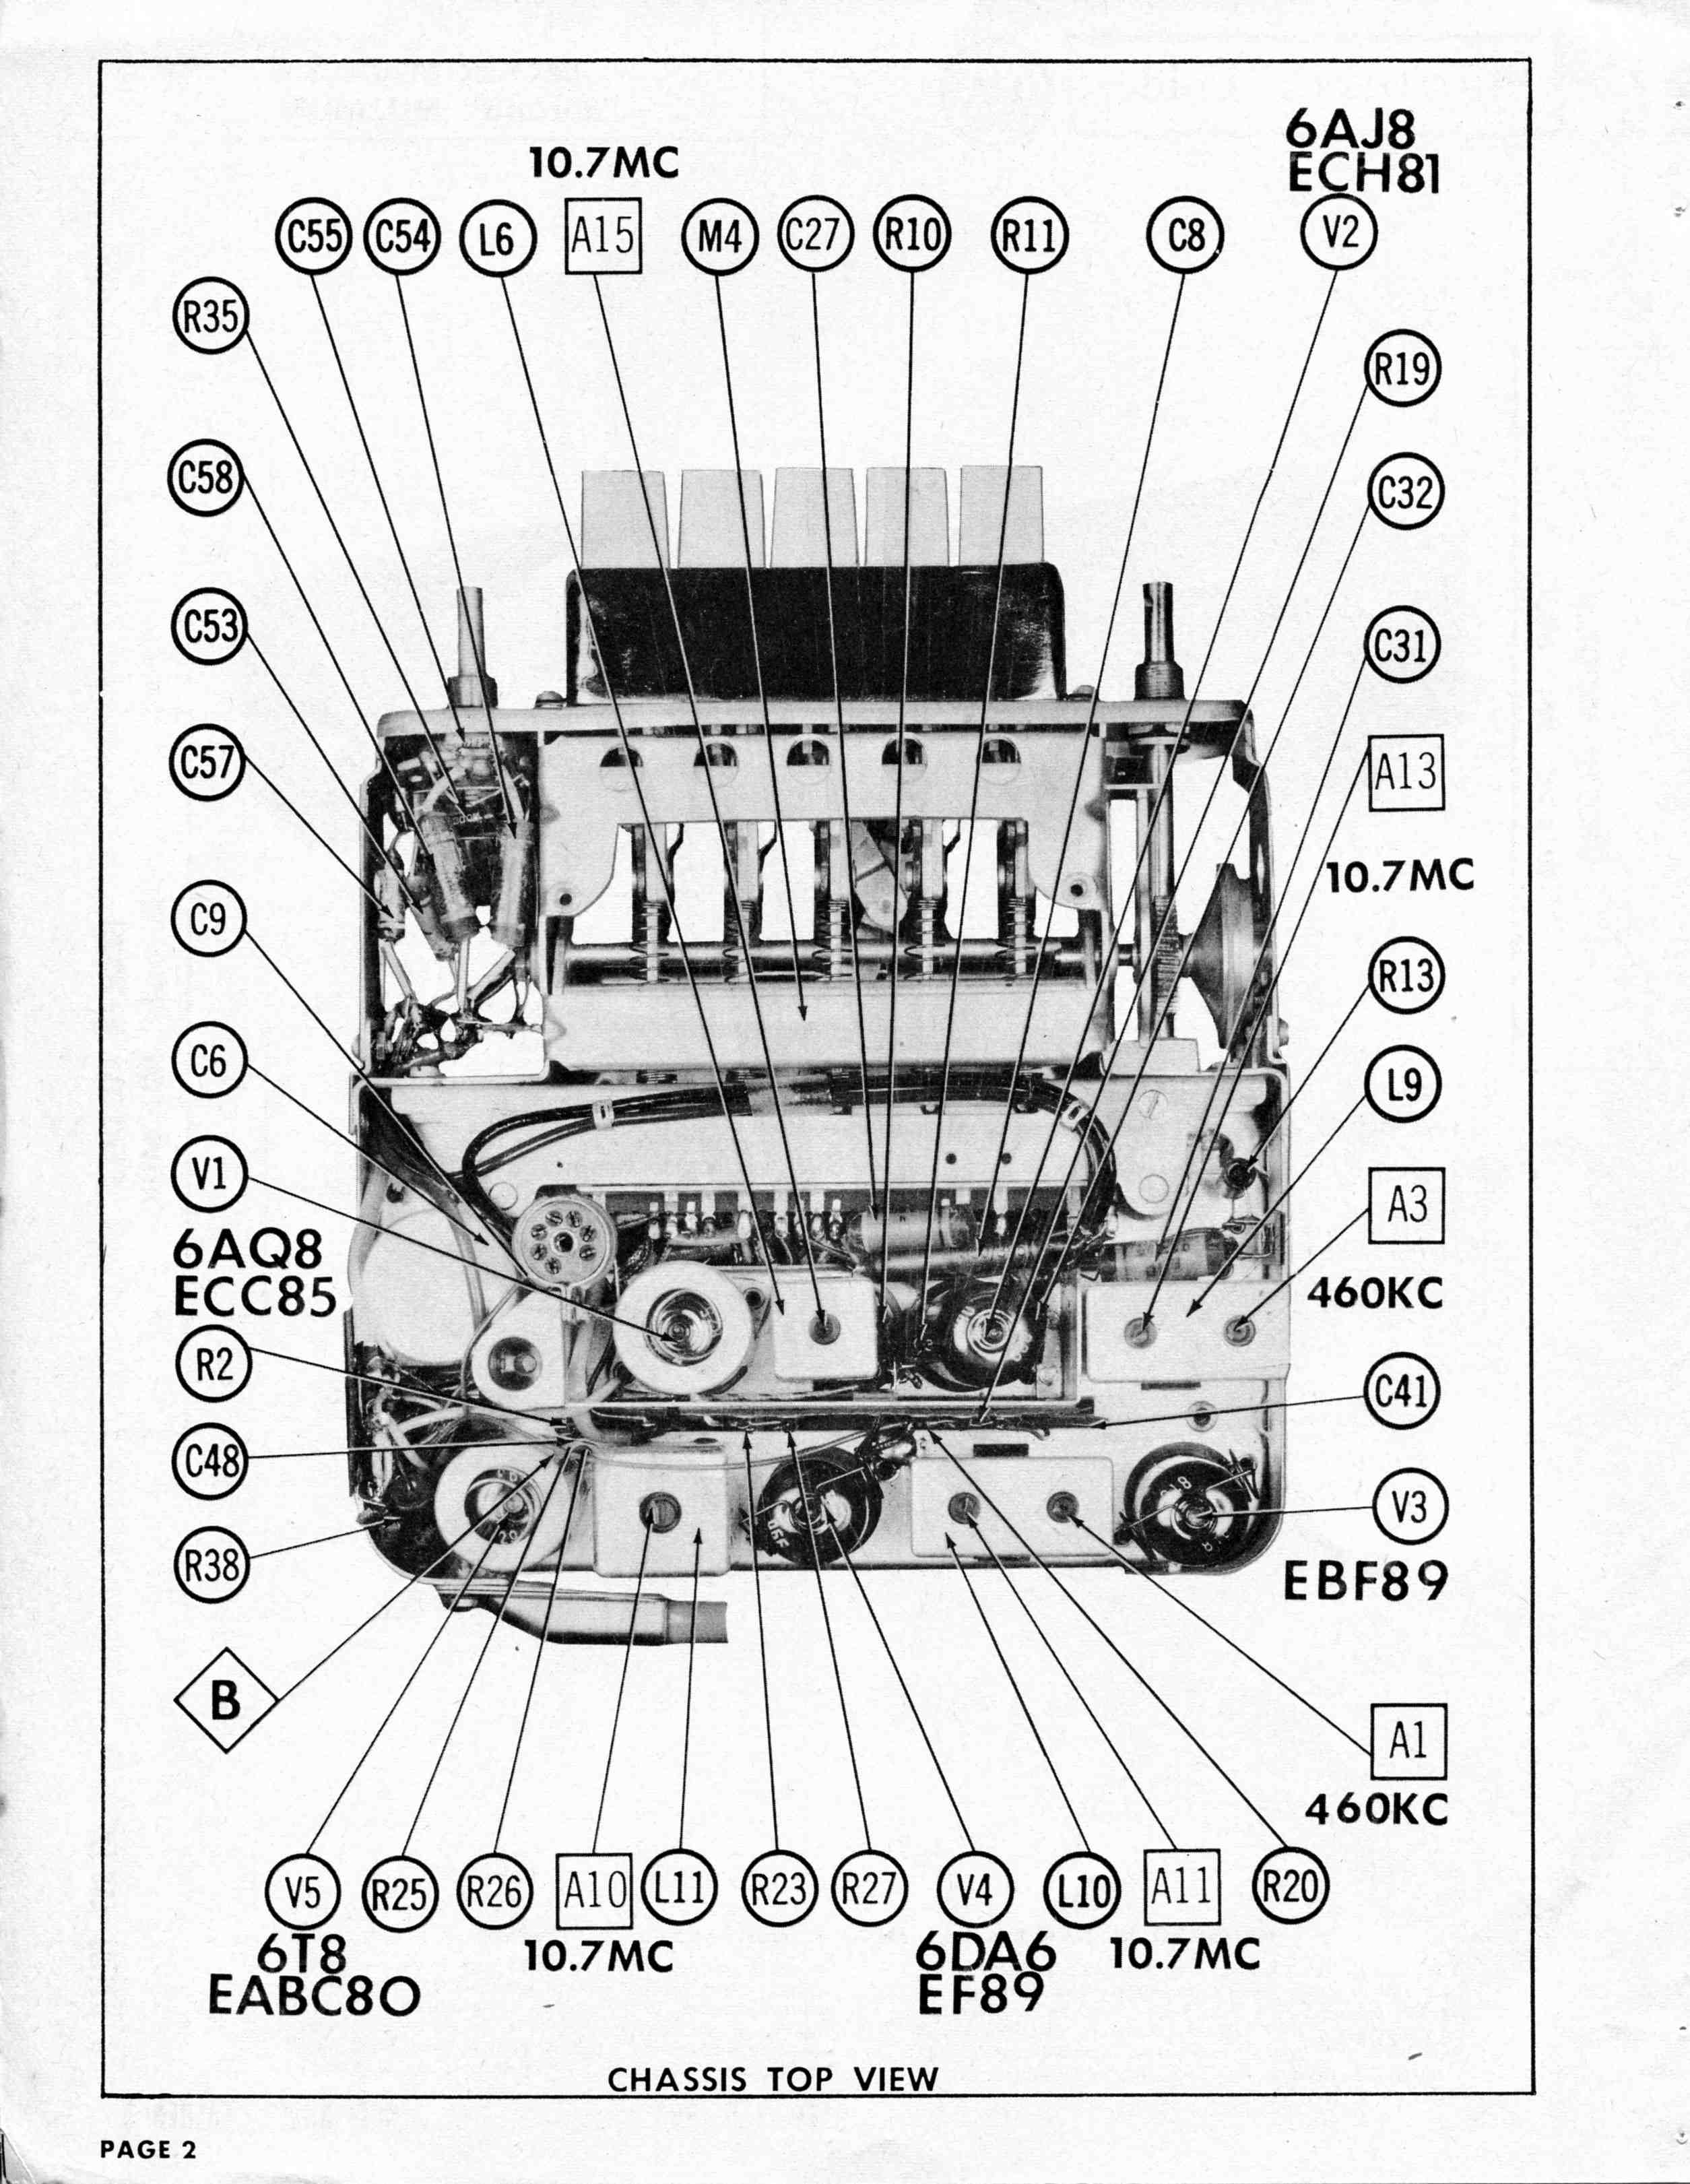 Wiring Diagram For Mercedes 300d on 1984 Mercedes 380sl Wiring Diagrams